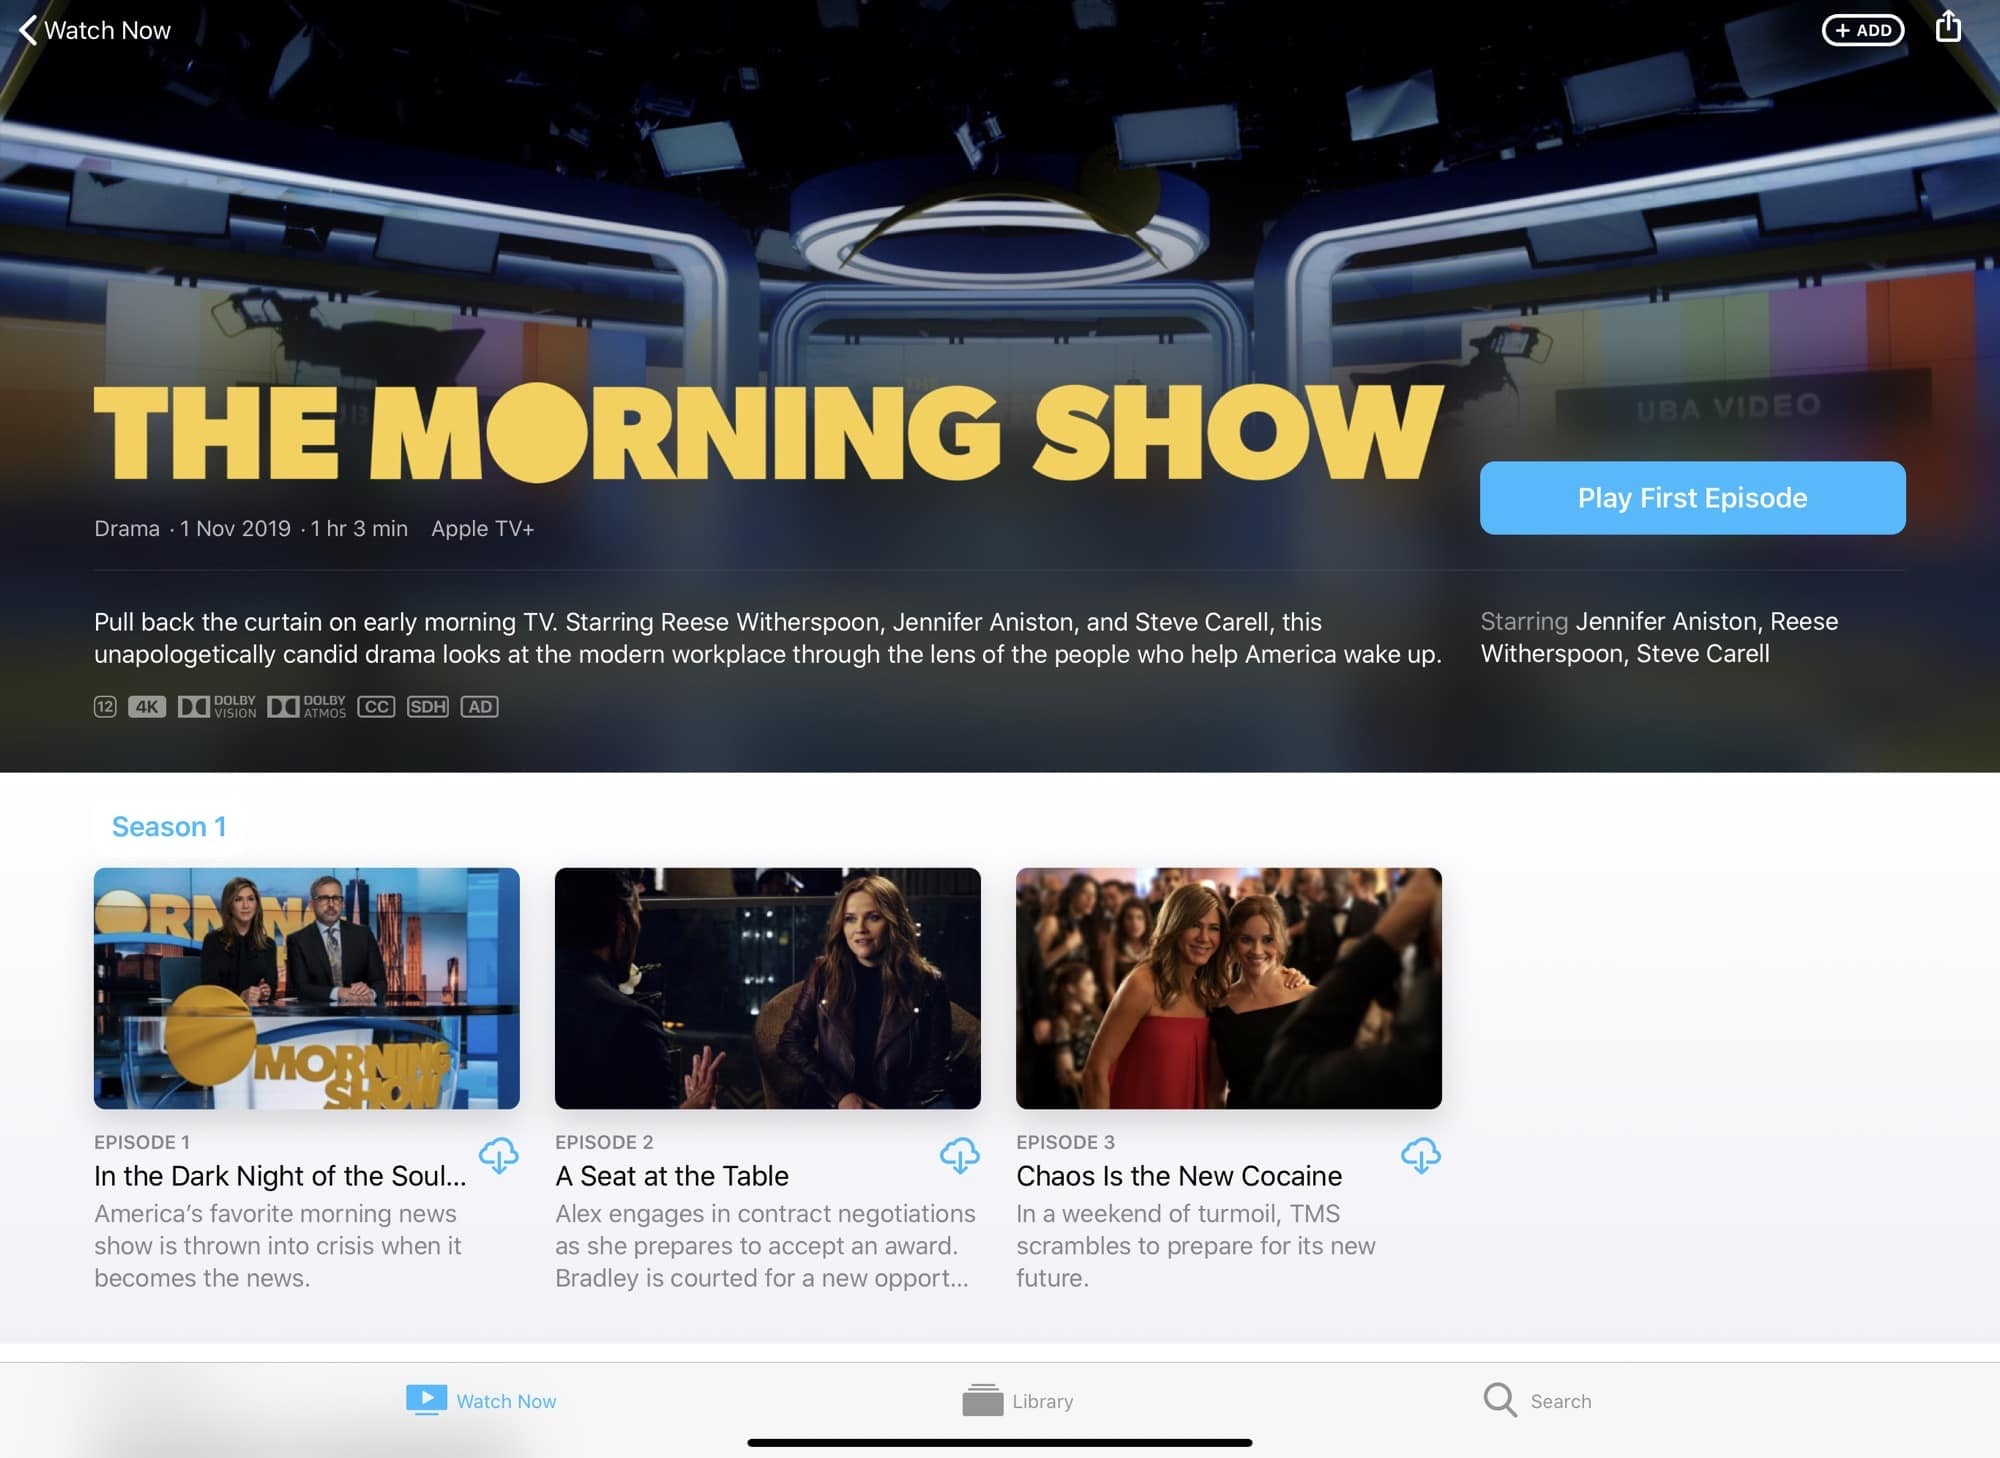 The Morning Show is just one of the star-studded offerings on Apple TV+.